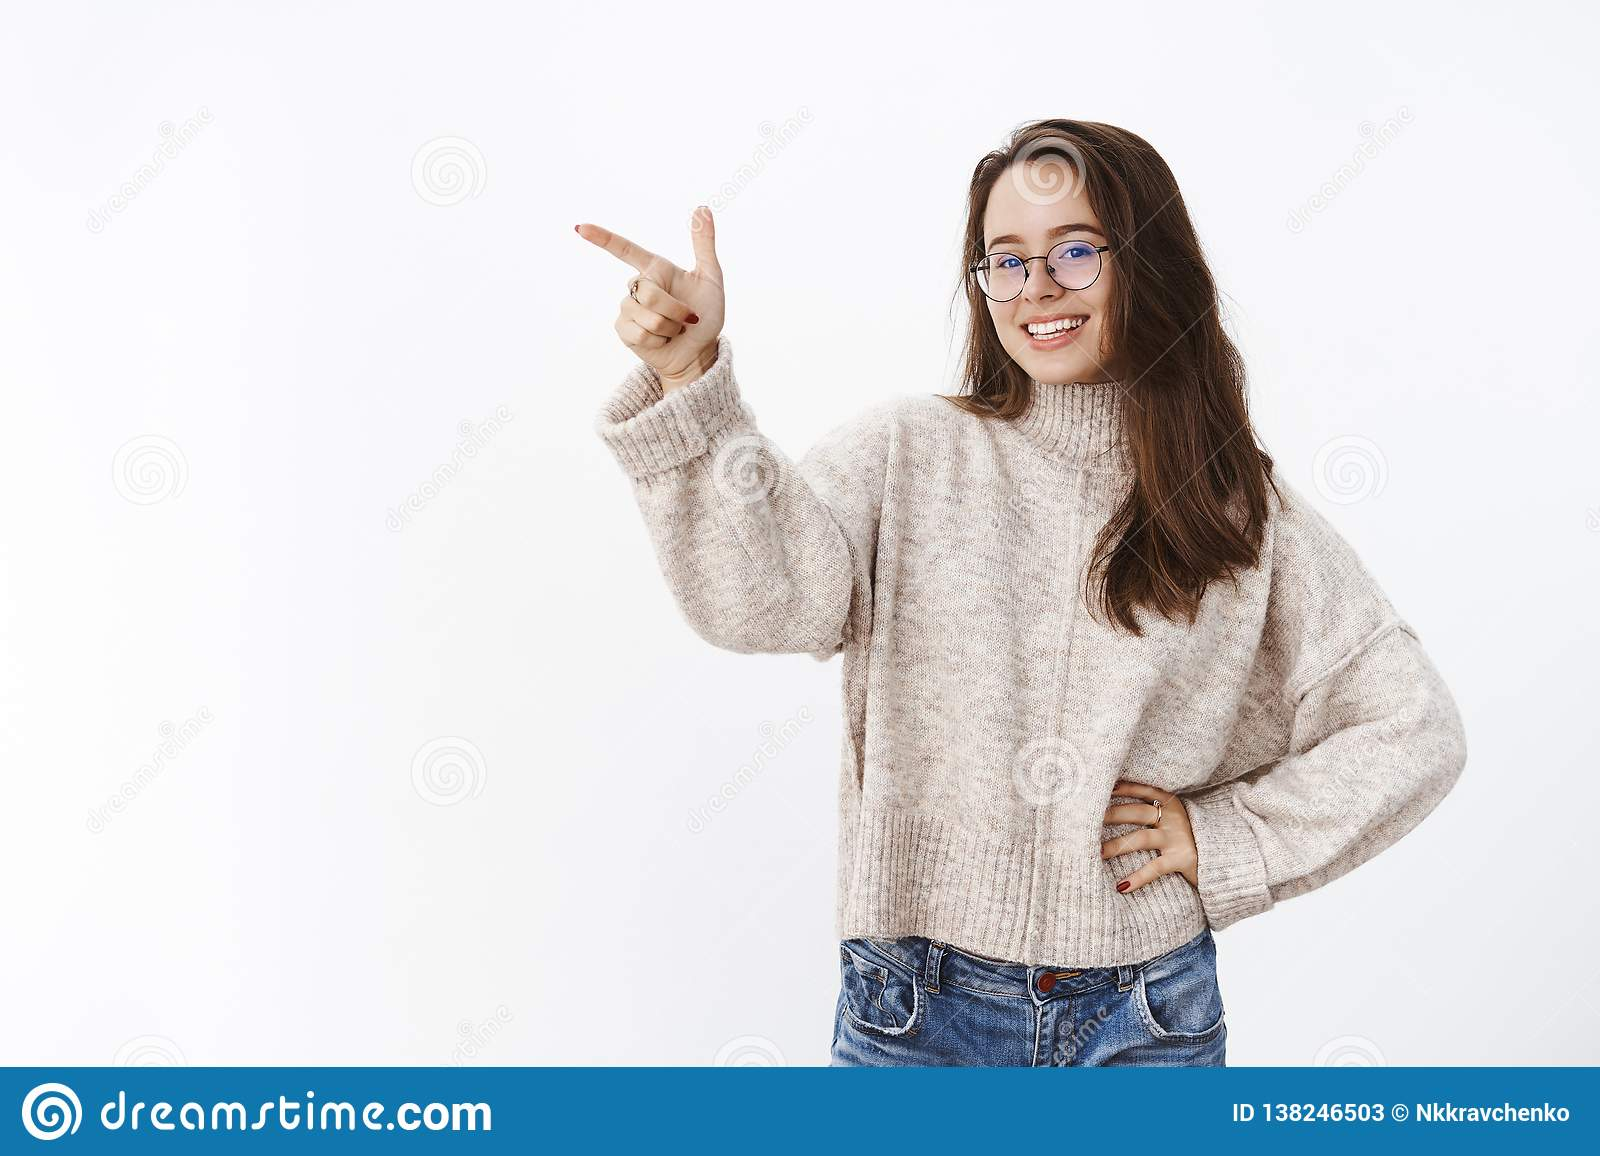 Indoor shot of happy carefree attractive female in glasses and sweater holding hand on waist, smiling and laughing as